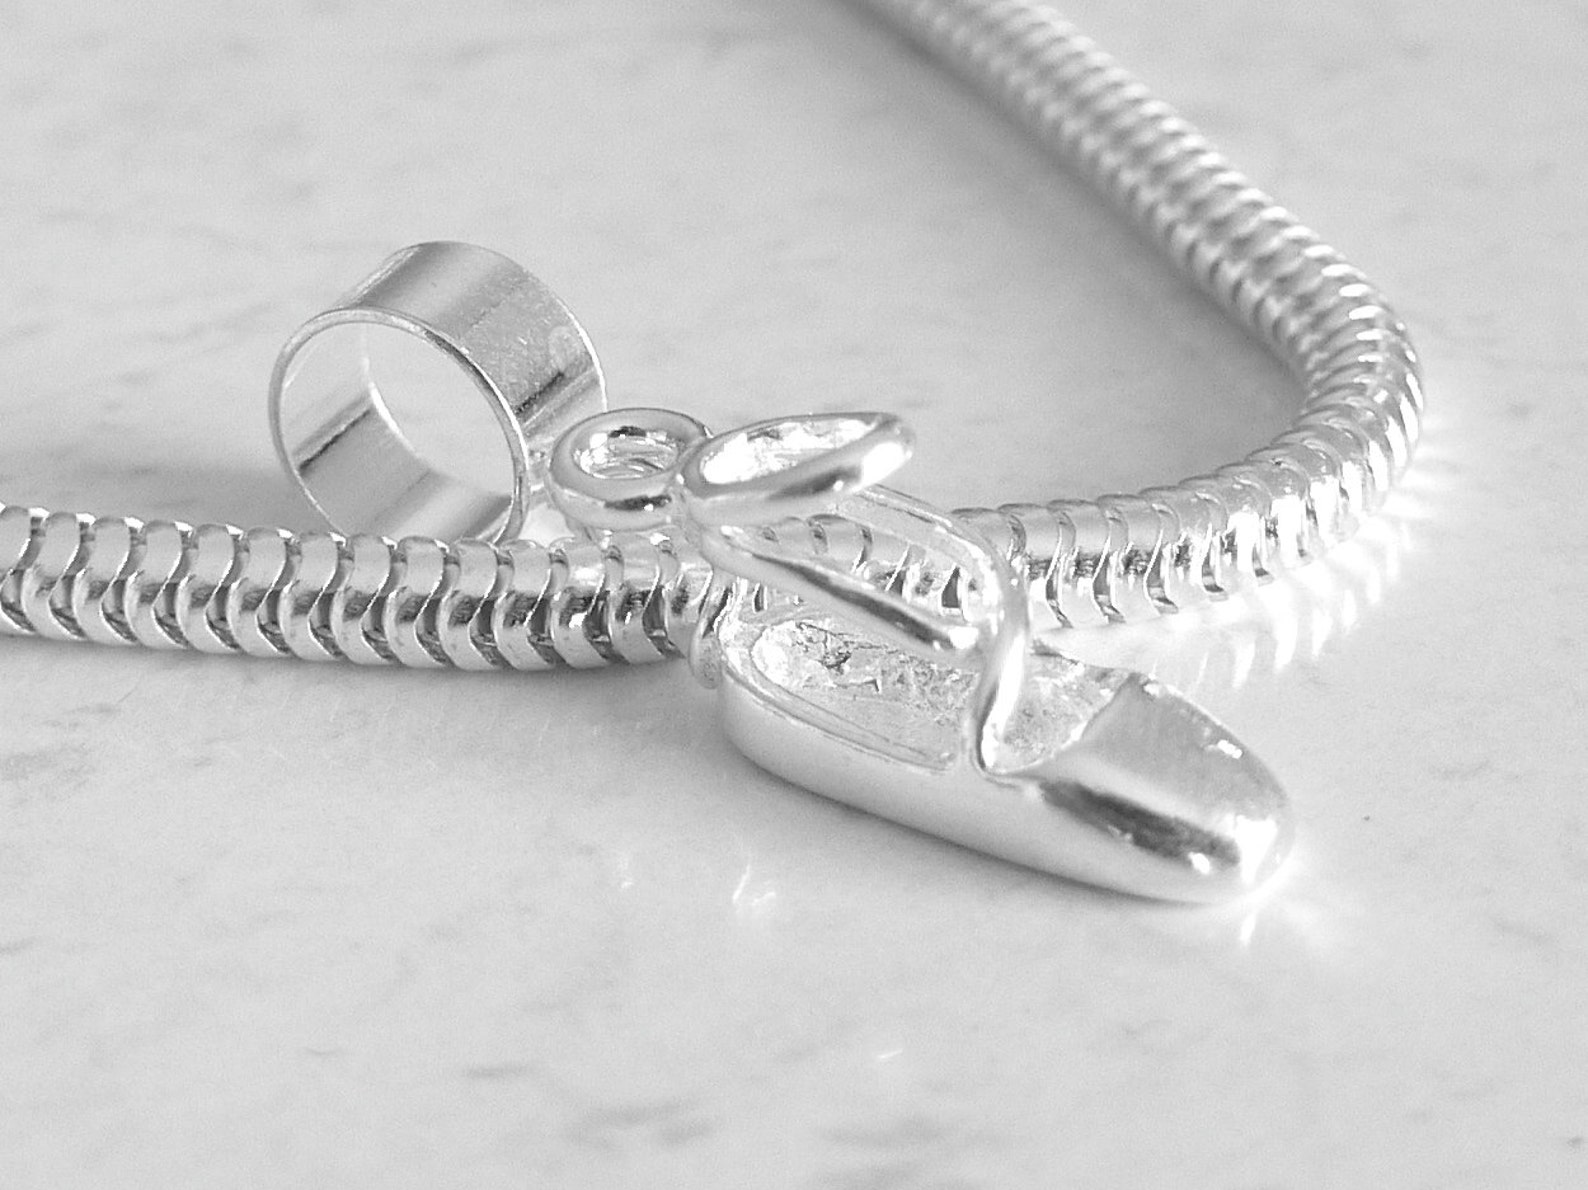 ballet shoe slipper sterling silver charm fits all slide on bracelets